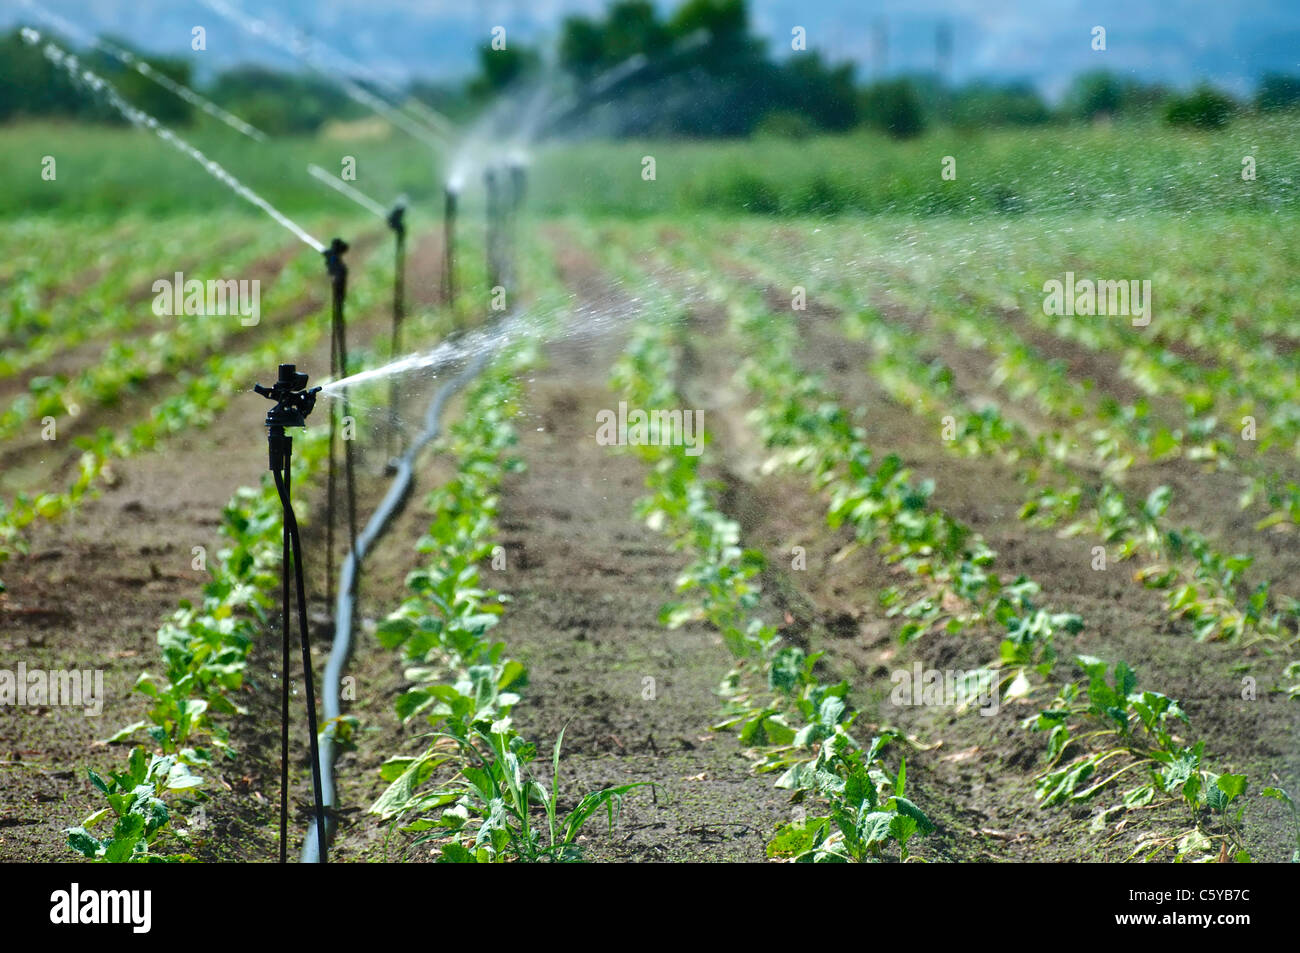 Irrigation on Agricultural land - Stock Image